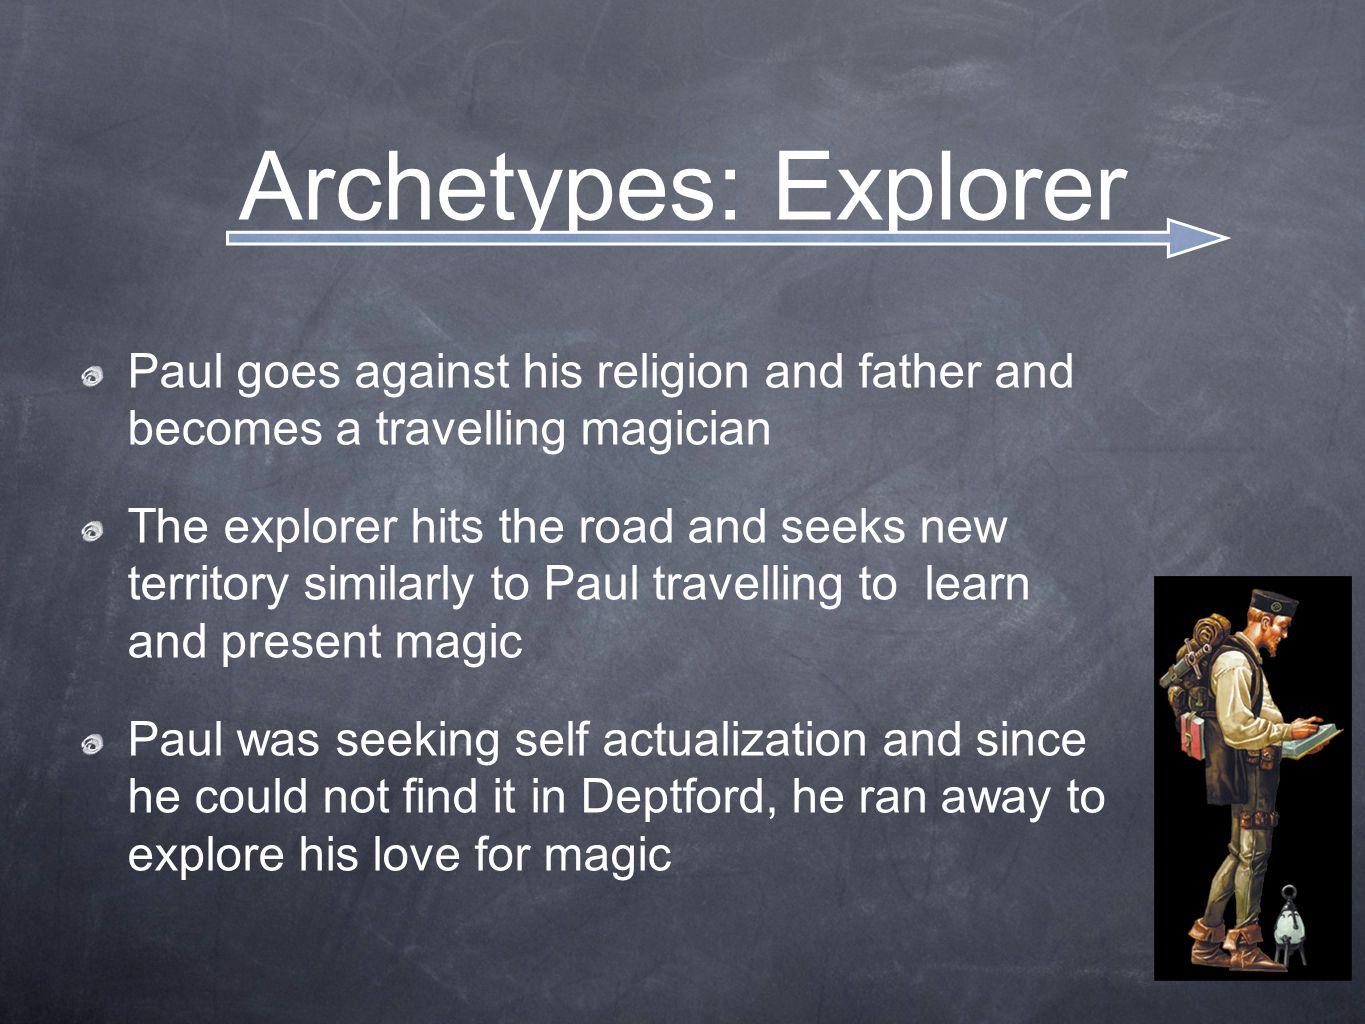 Archetypes: Explorer Paul goes against his religion and father and becomes a travelling magician.